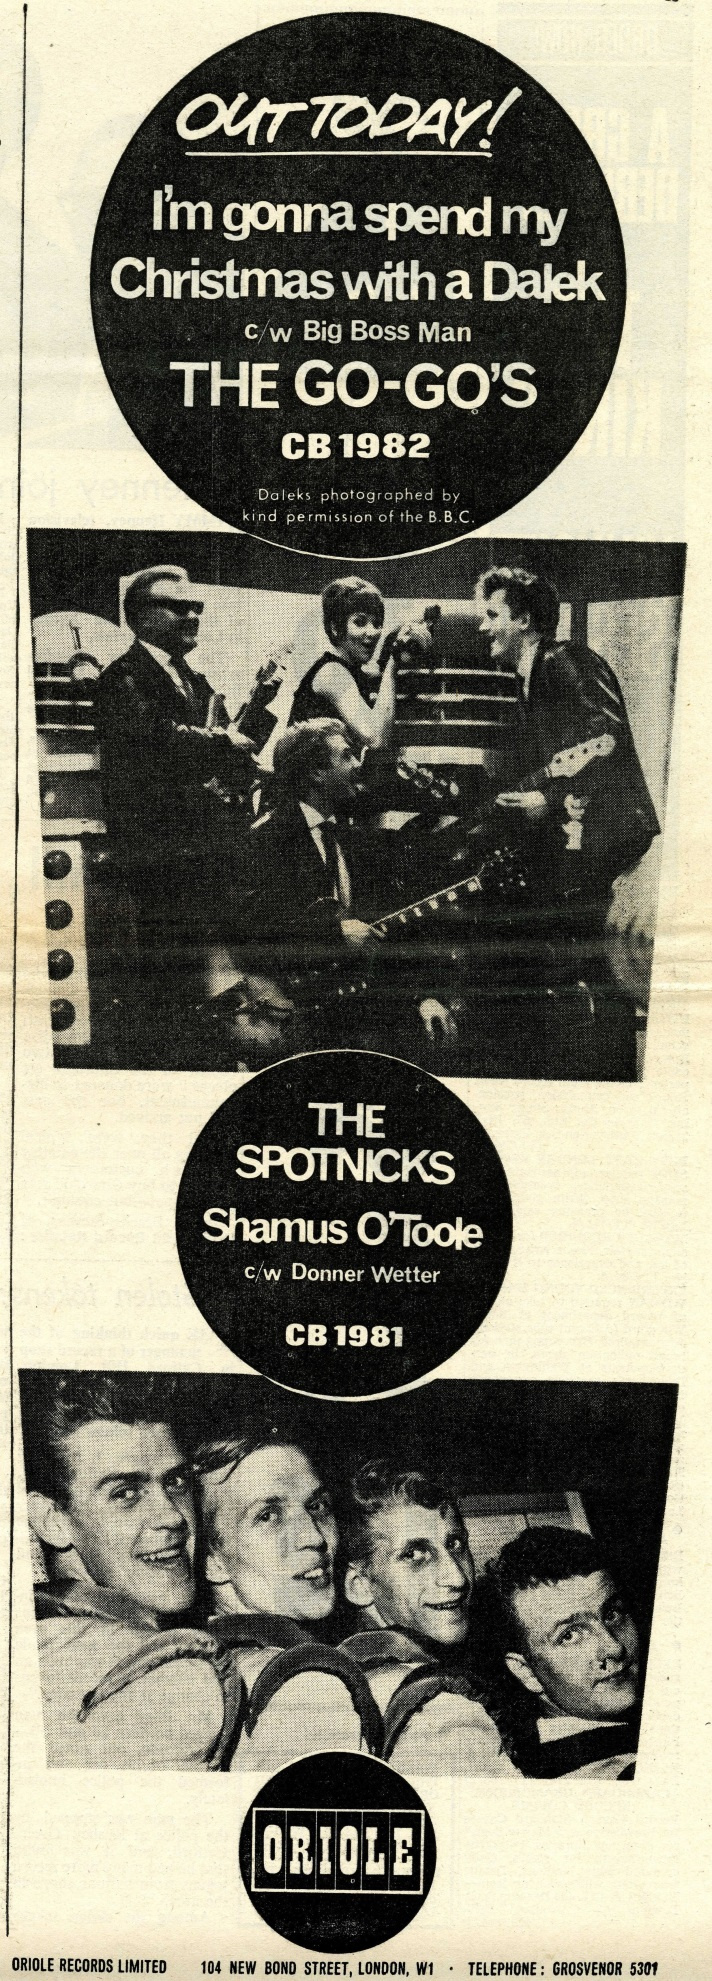 The Go-Go's, I'm Gonna Spend My Christmas With A Dalek, advert in Record Retailer, 8th December 1964